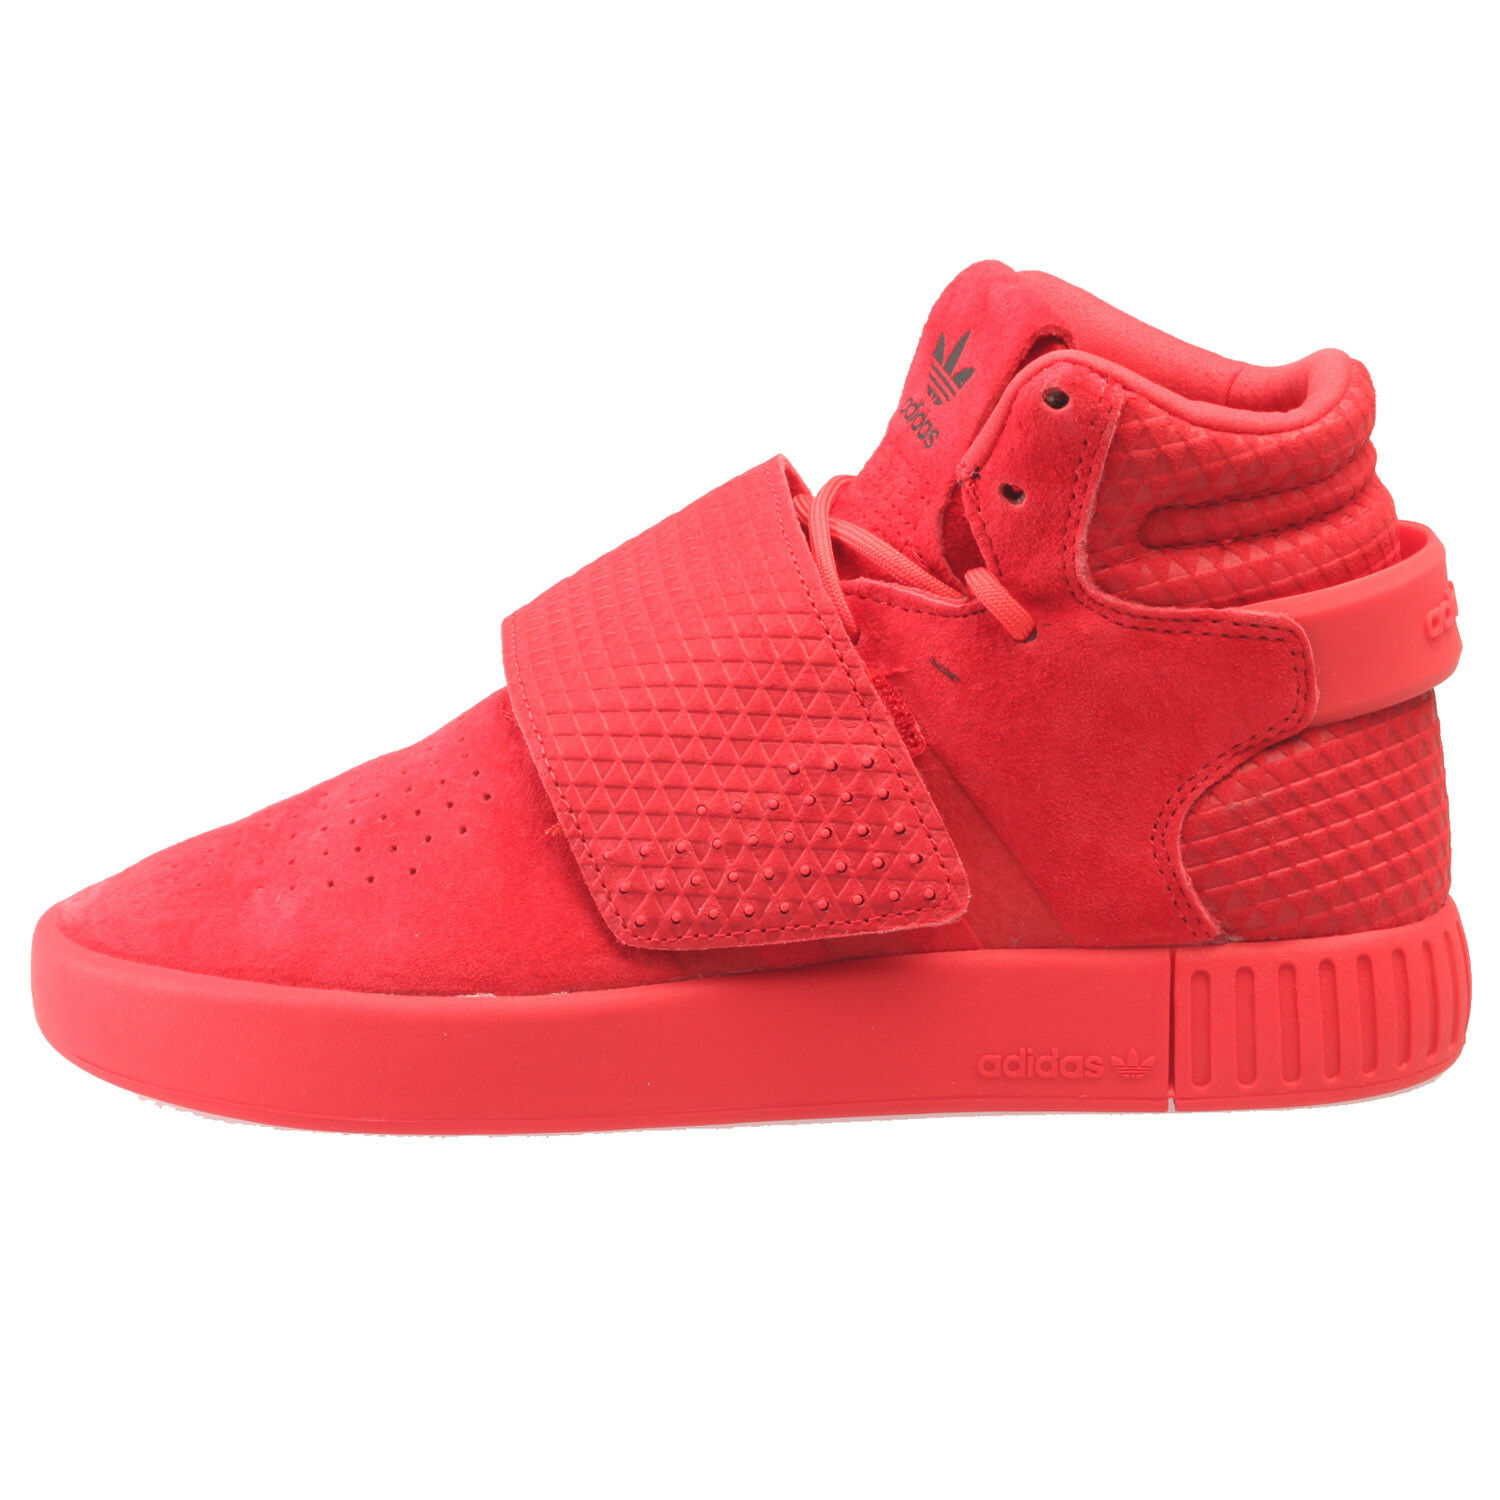 low priced bcbf9 f7869 Adidas Tubular Invader Triple Red Big Kids S80477 Ray Red Shoes Youth Size 6